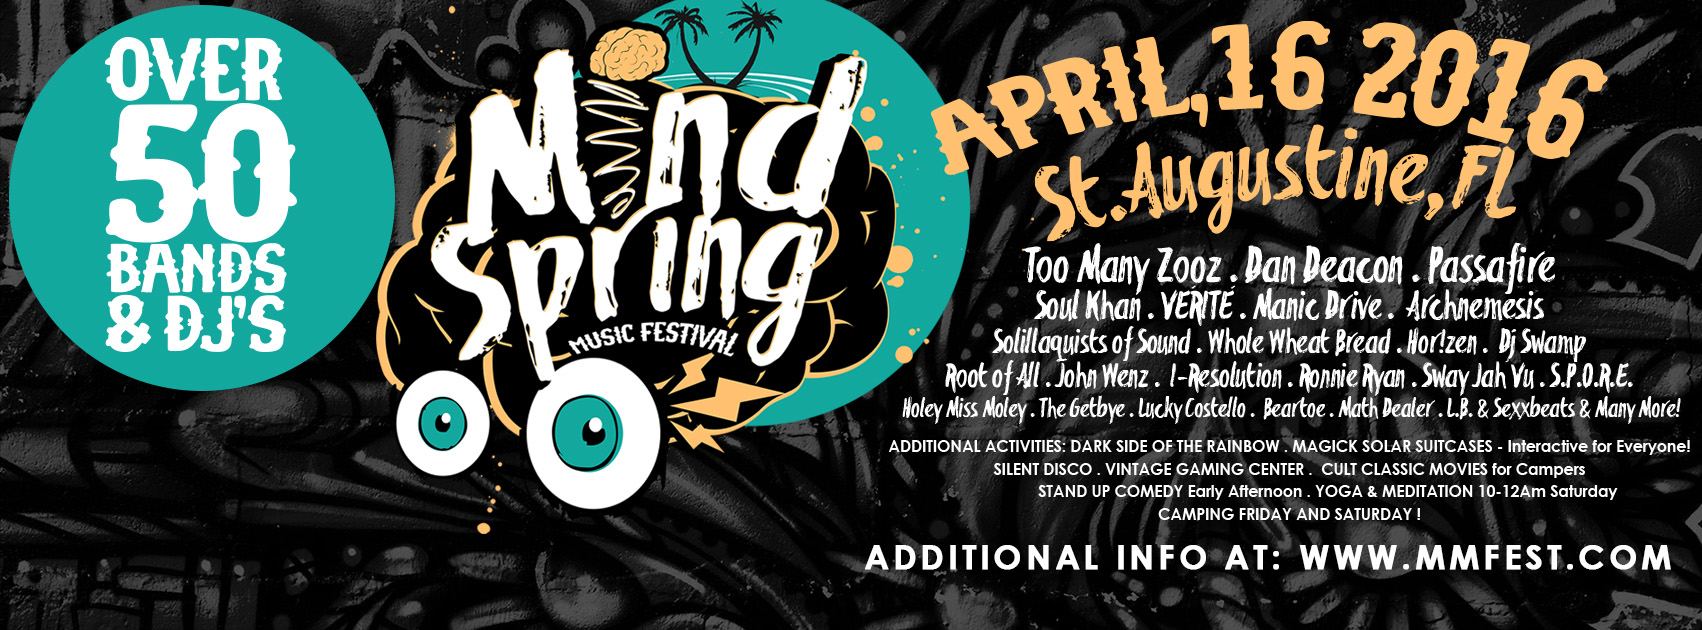 Mindspring Music Festival in St. Augustine with Holey Miss Moley & I-Resolution